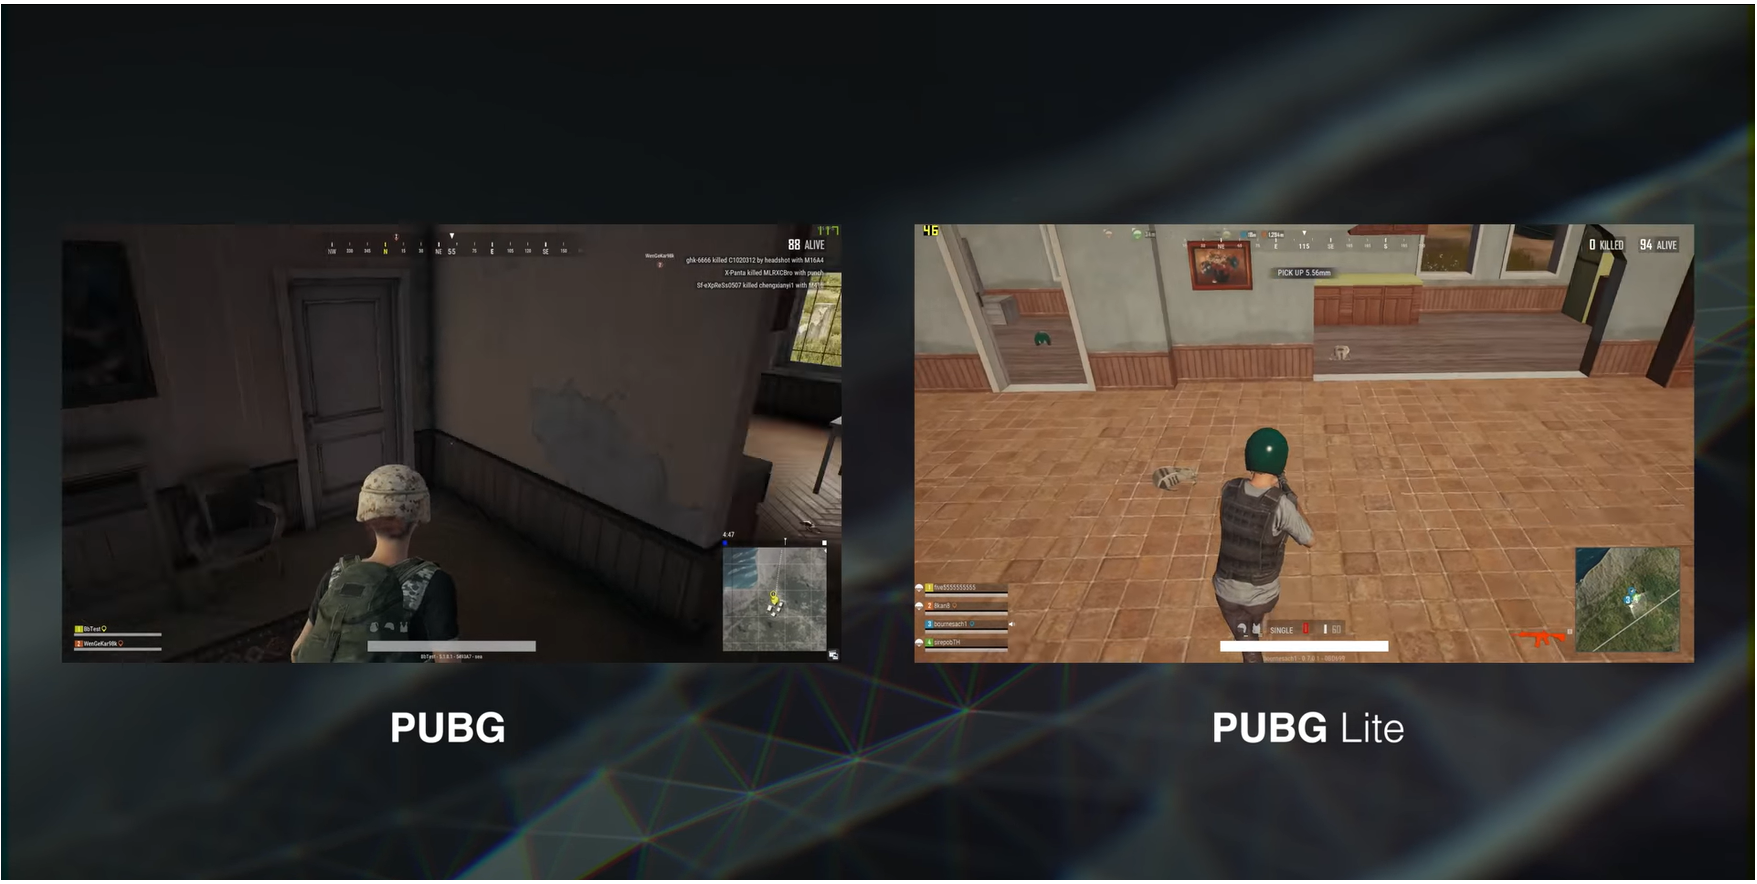 pubg vs pubs lite